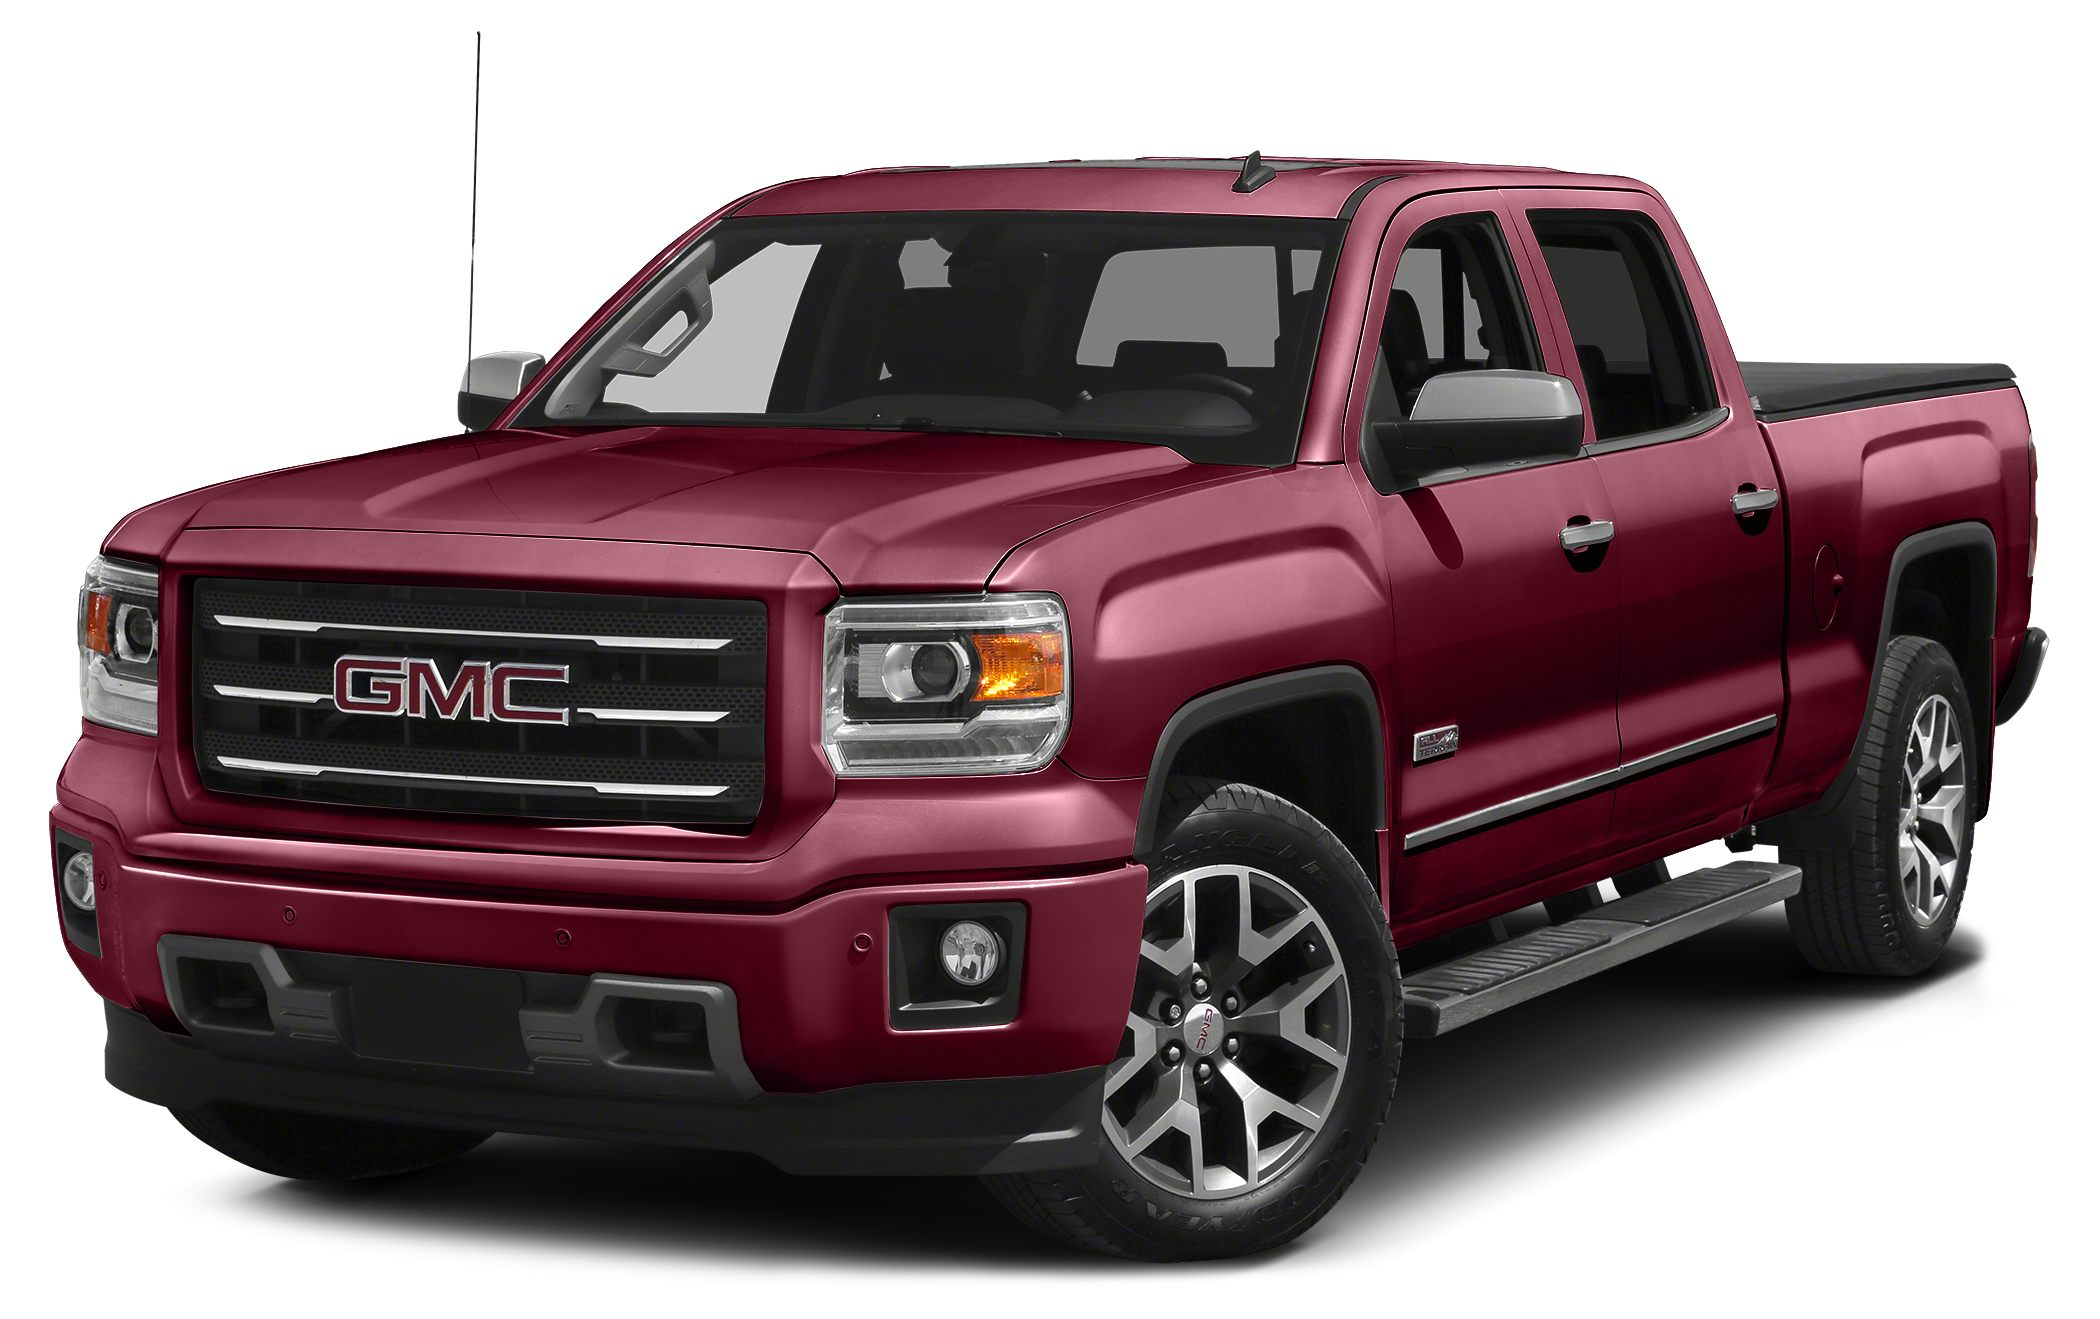 2015 GMC Sierra 1500 SLT 6-Speed Automatic Electronic with Overdrive Jet Black Leather 342 Rear